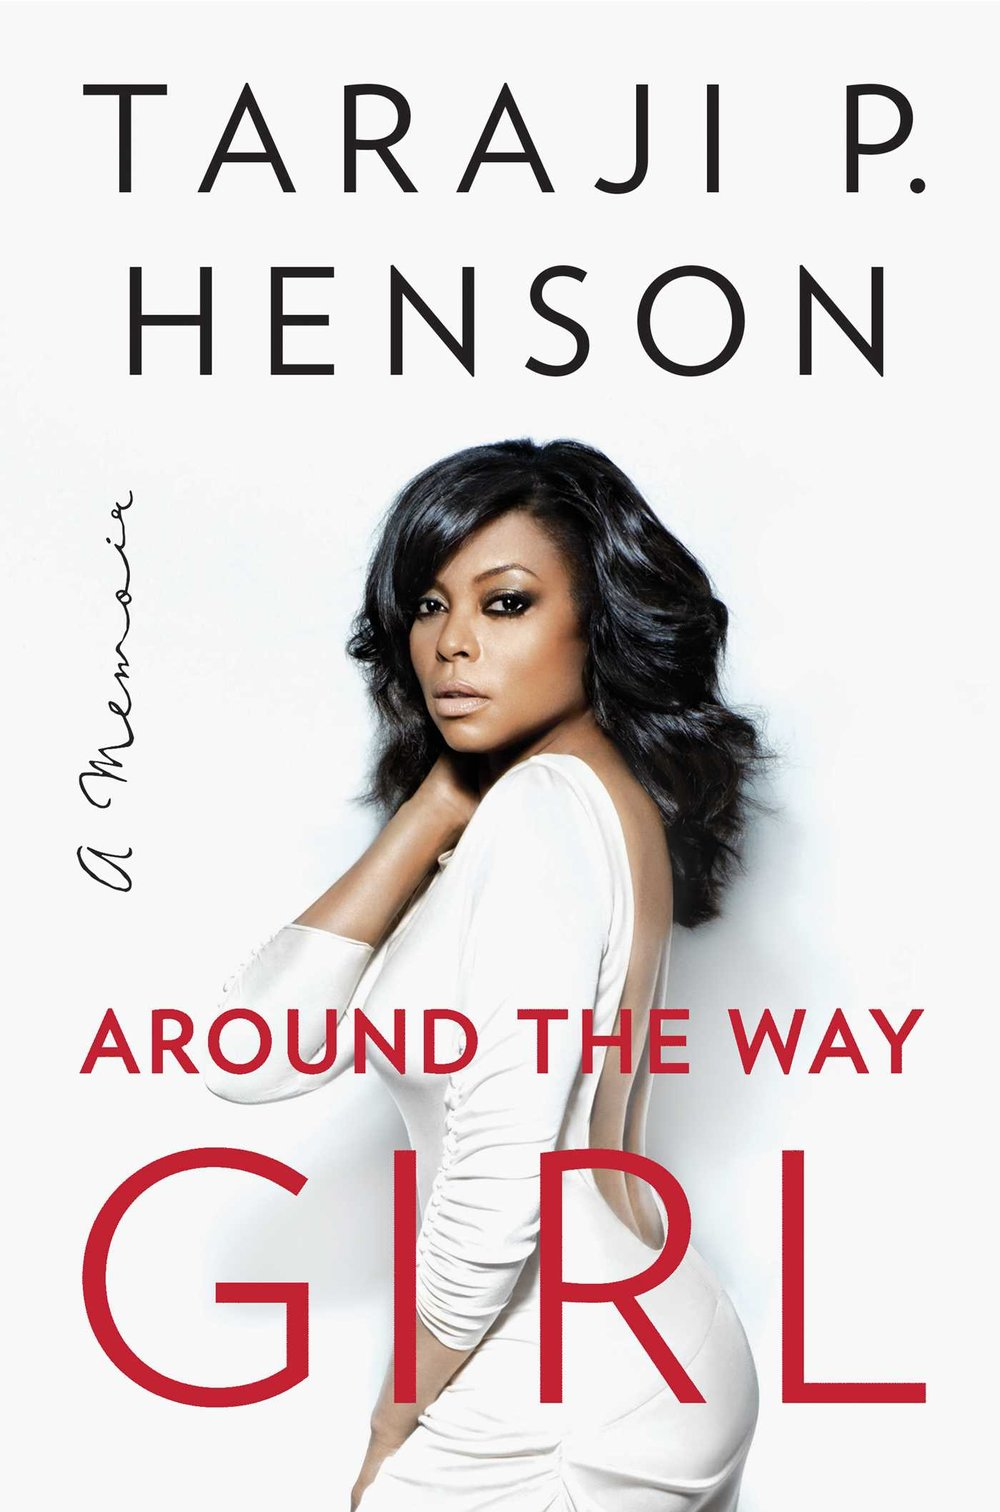 | AROUND THE WAY GIRL | Taraji P. Henson | Simon & Schuster |